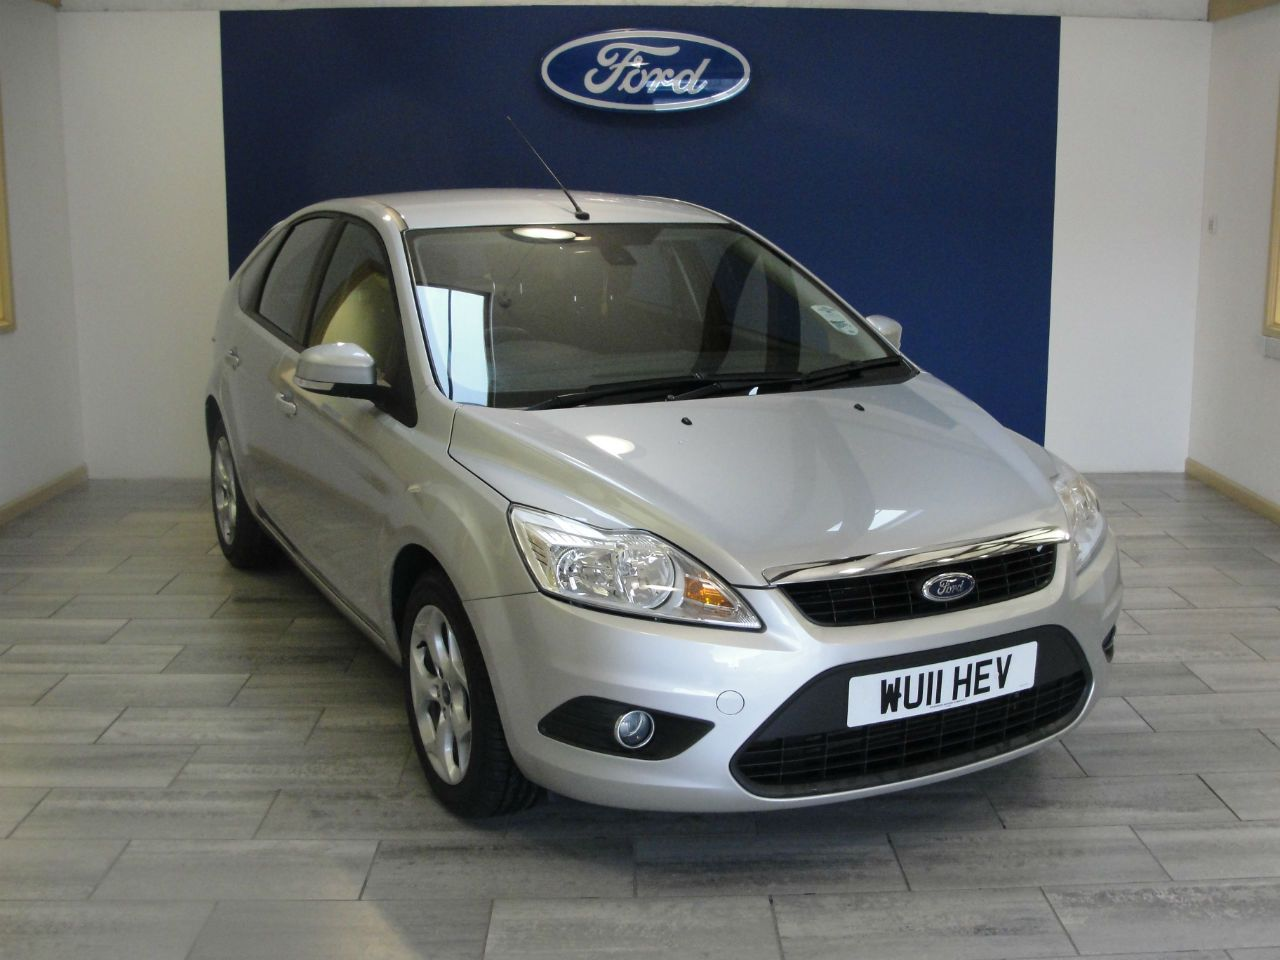 Now Sold Ford Focus 1 6 Tdci Sport 5dr Swanson Ford Call 01626 352000 Or Visit Www Swanson Ford Co Uk For More Det With Images Ford Focus 1 Used Ford Used Ford Focus